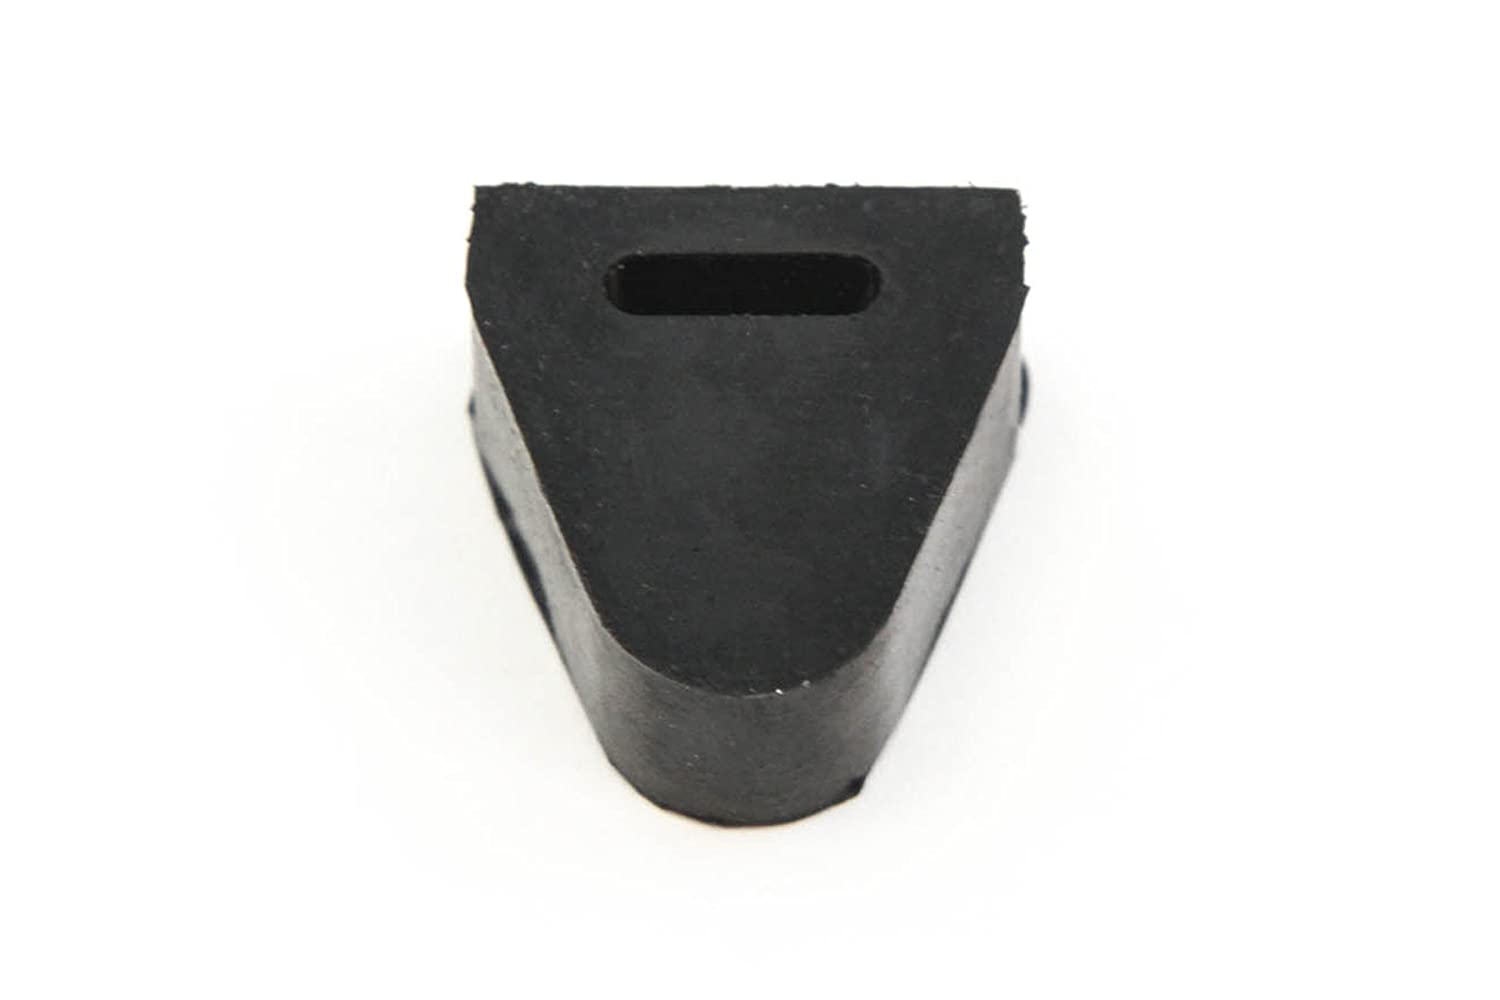 Rubber Tailgate Bumper Stop for 1999-2006 Compatible with Chevy Silverado and GMC Sierra Right or Left Side Latch Cushion Stop